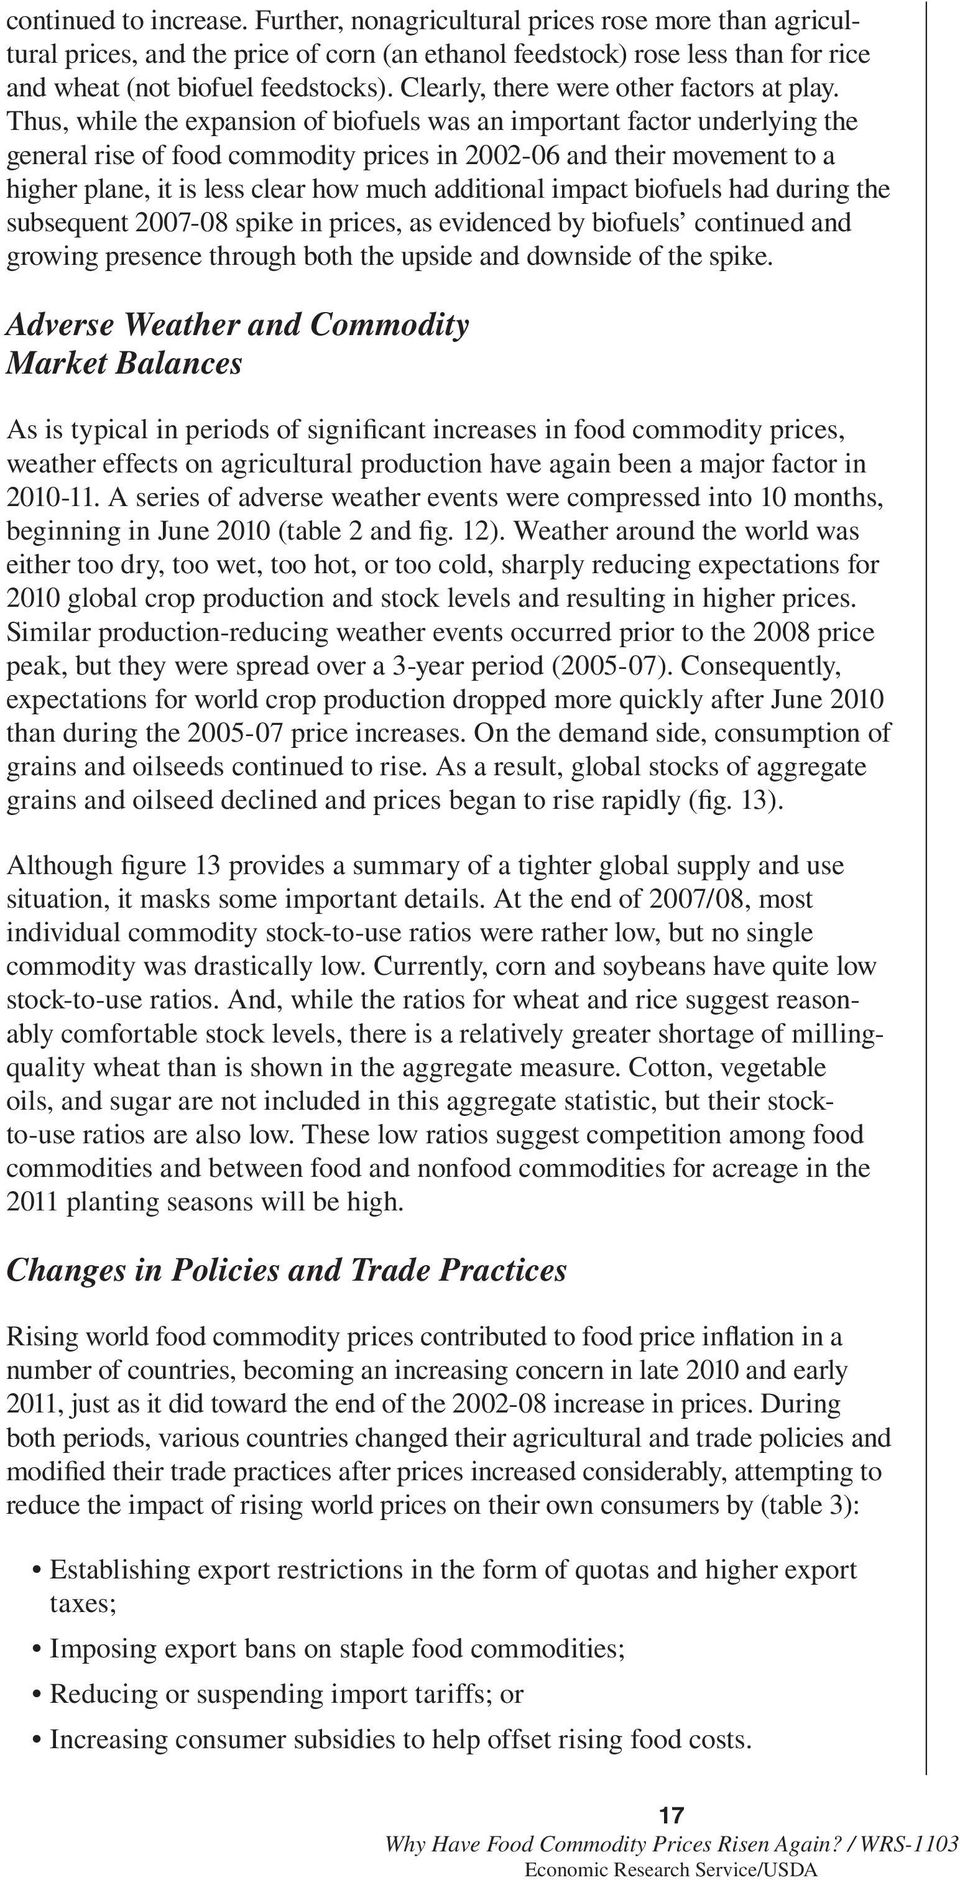 Thus, while the expansion of biofuels was an important factor underlying the general rise of food commodity prices in 22-6 and their movement to a higher plane, it is less clear how much additional